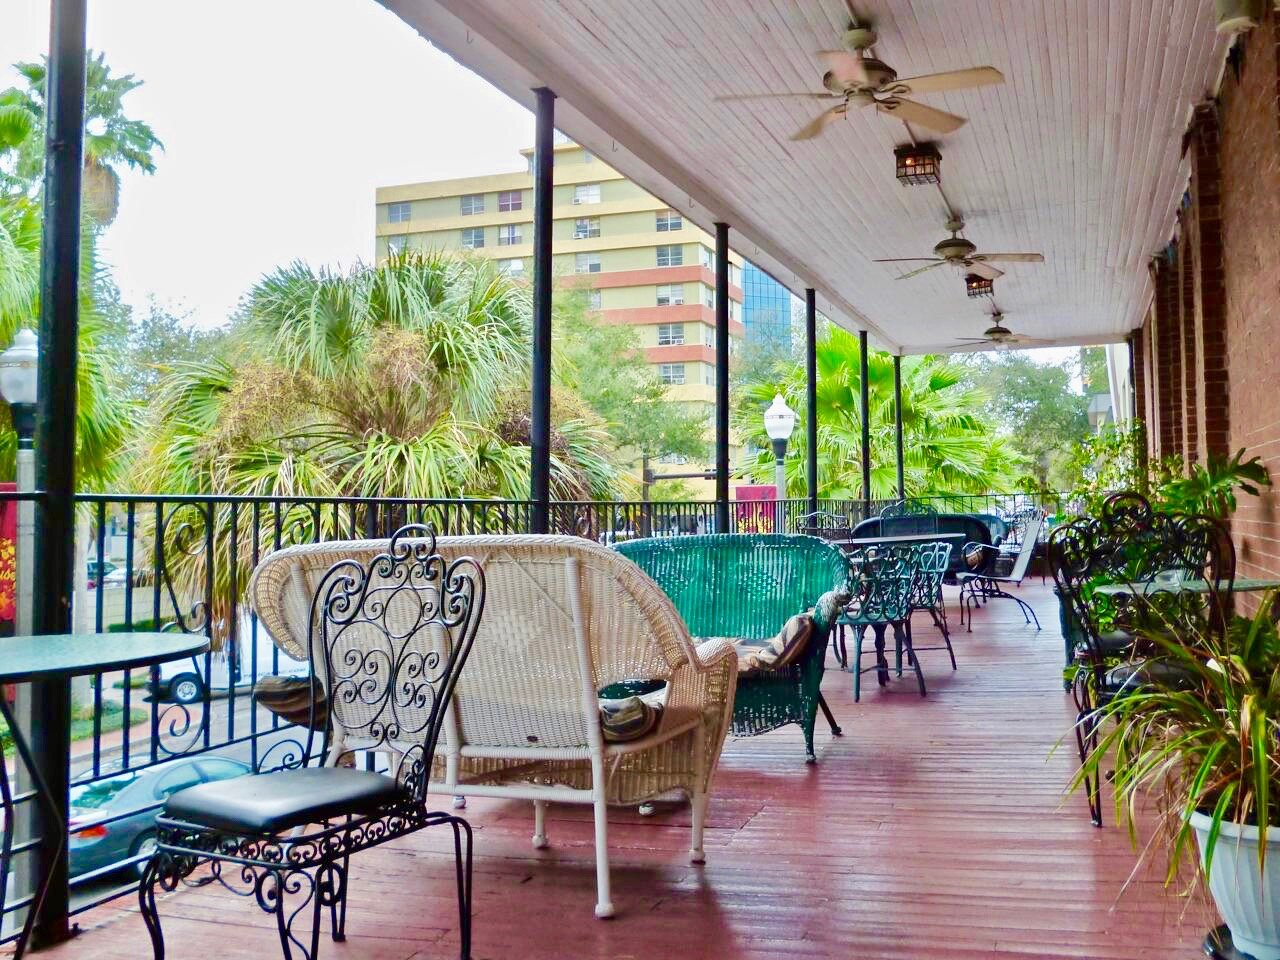 Sauvignon's new Orleans-style Balcony overlooking Central Ave in Downtown St Pete